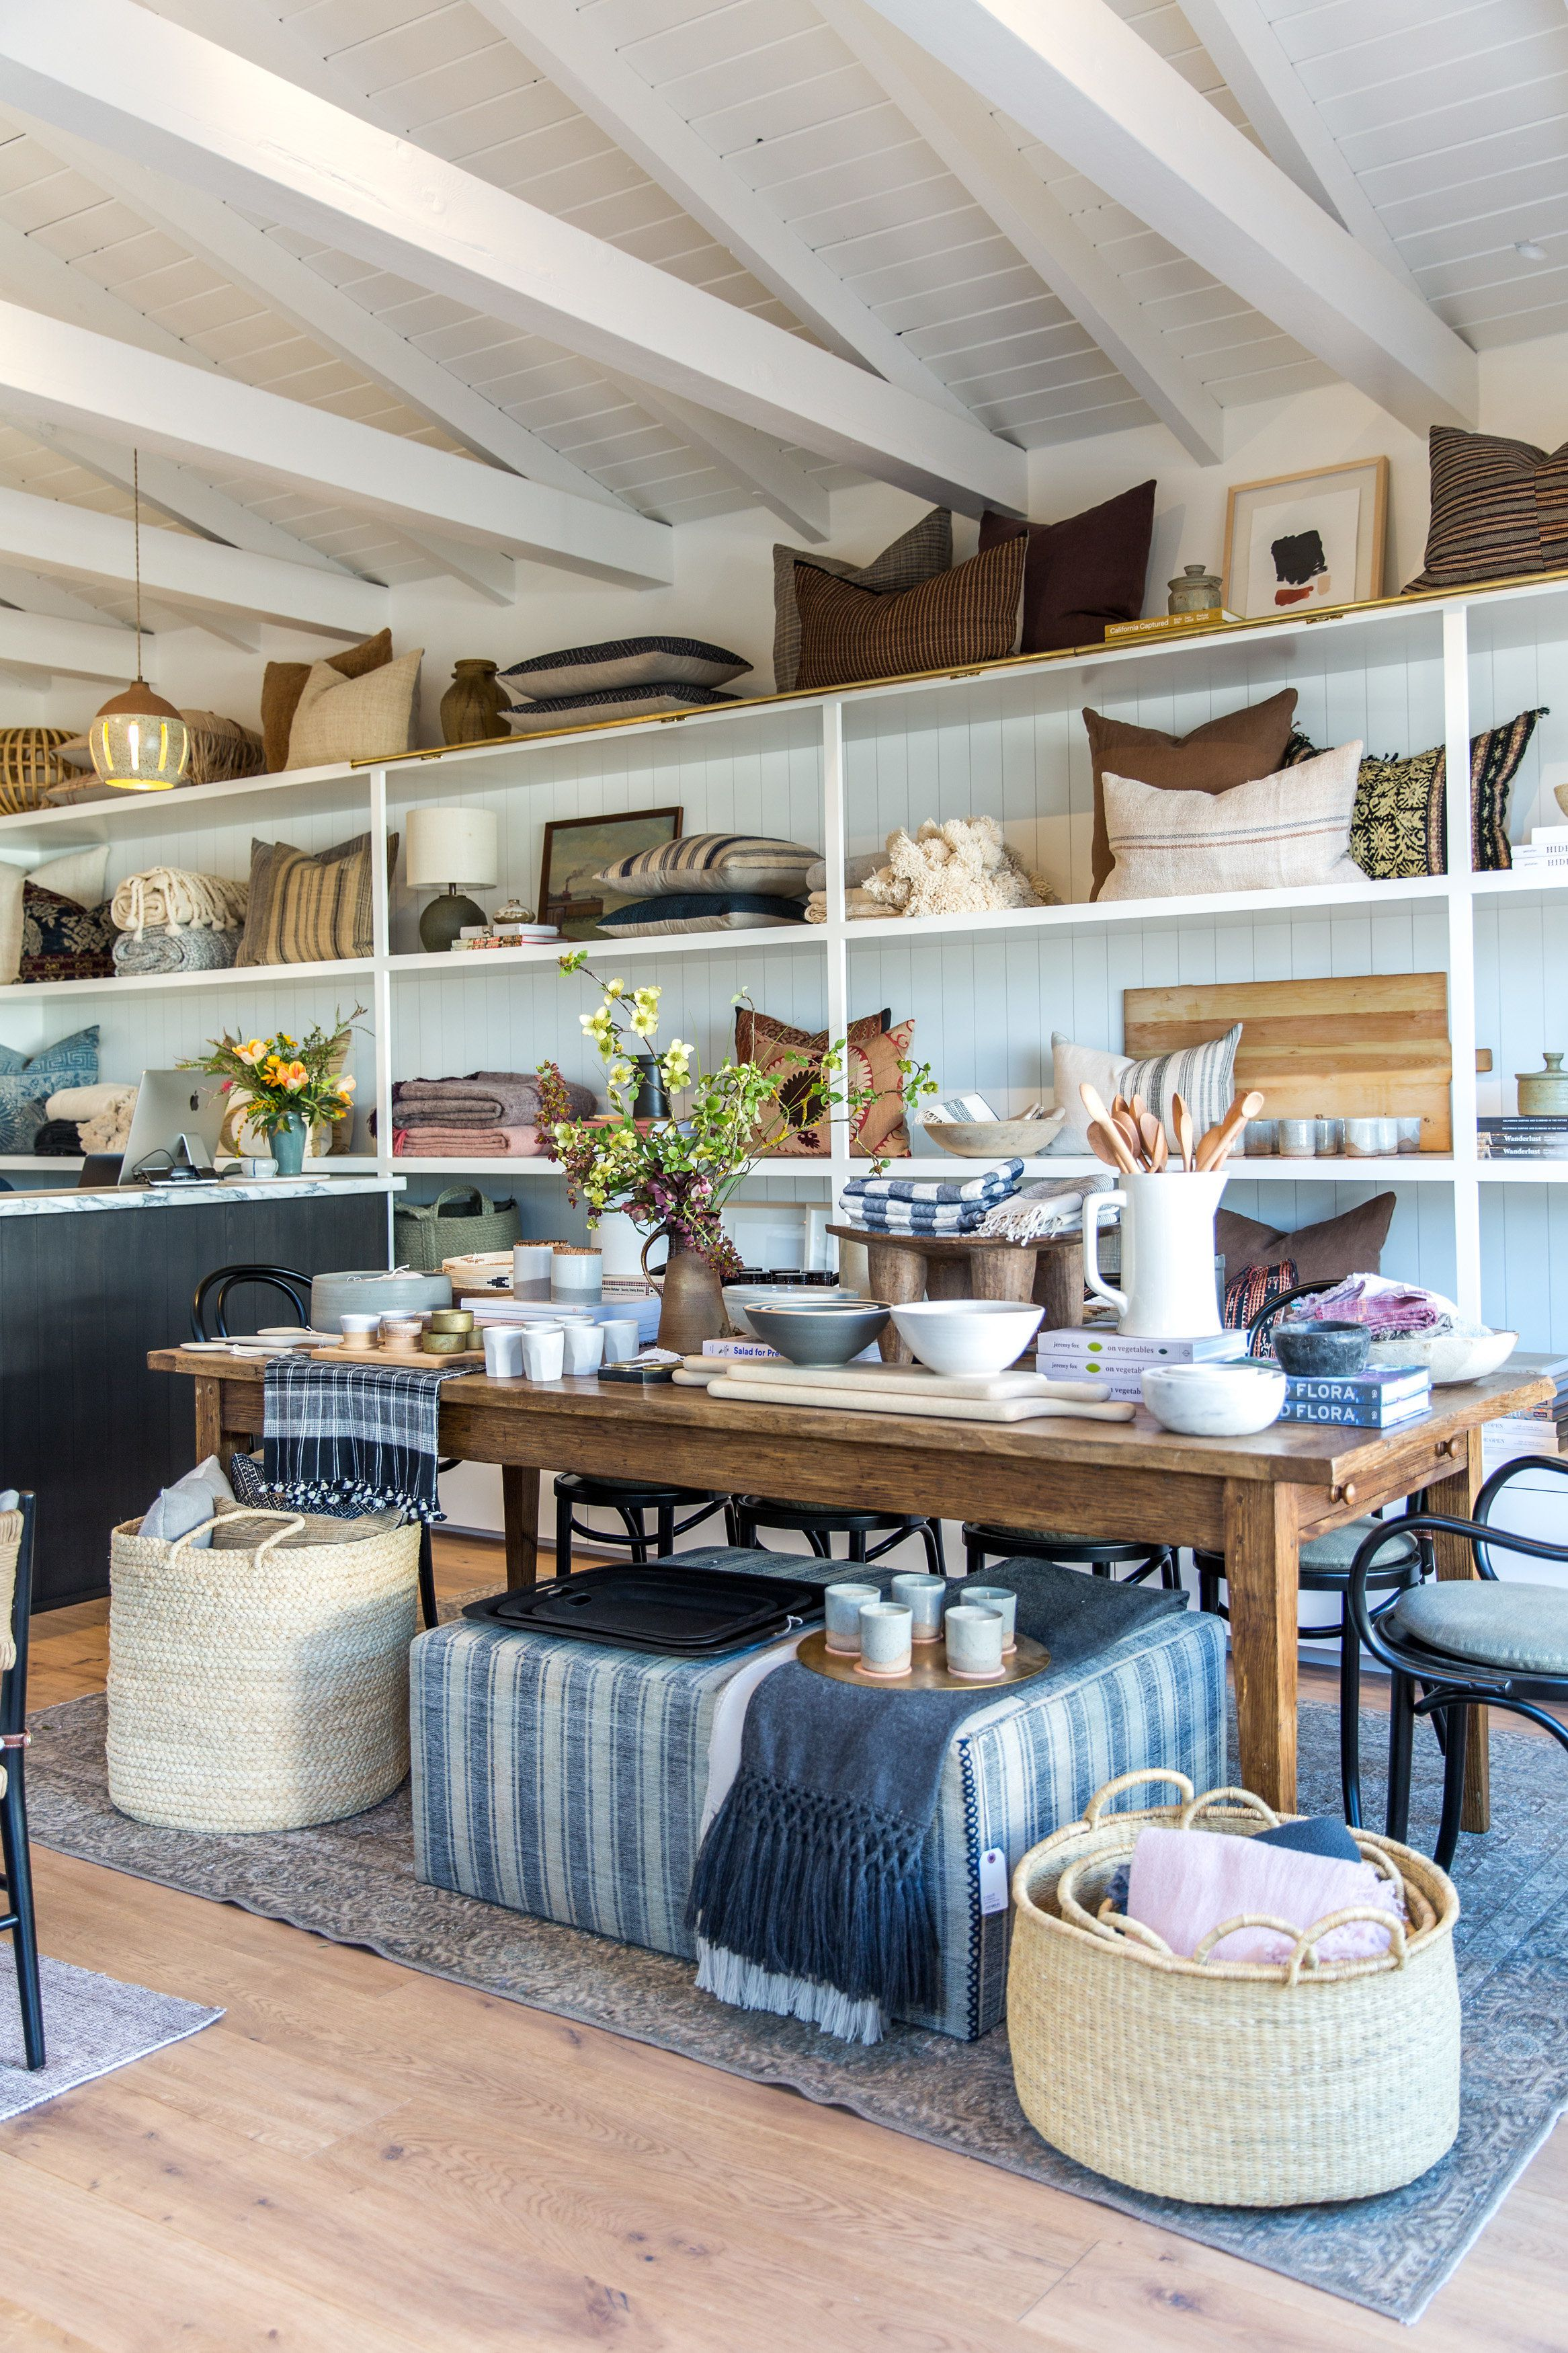 25 interior design stores you need to follow on instagram - What do you need to be an interior designer ...